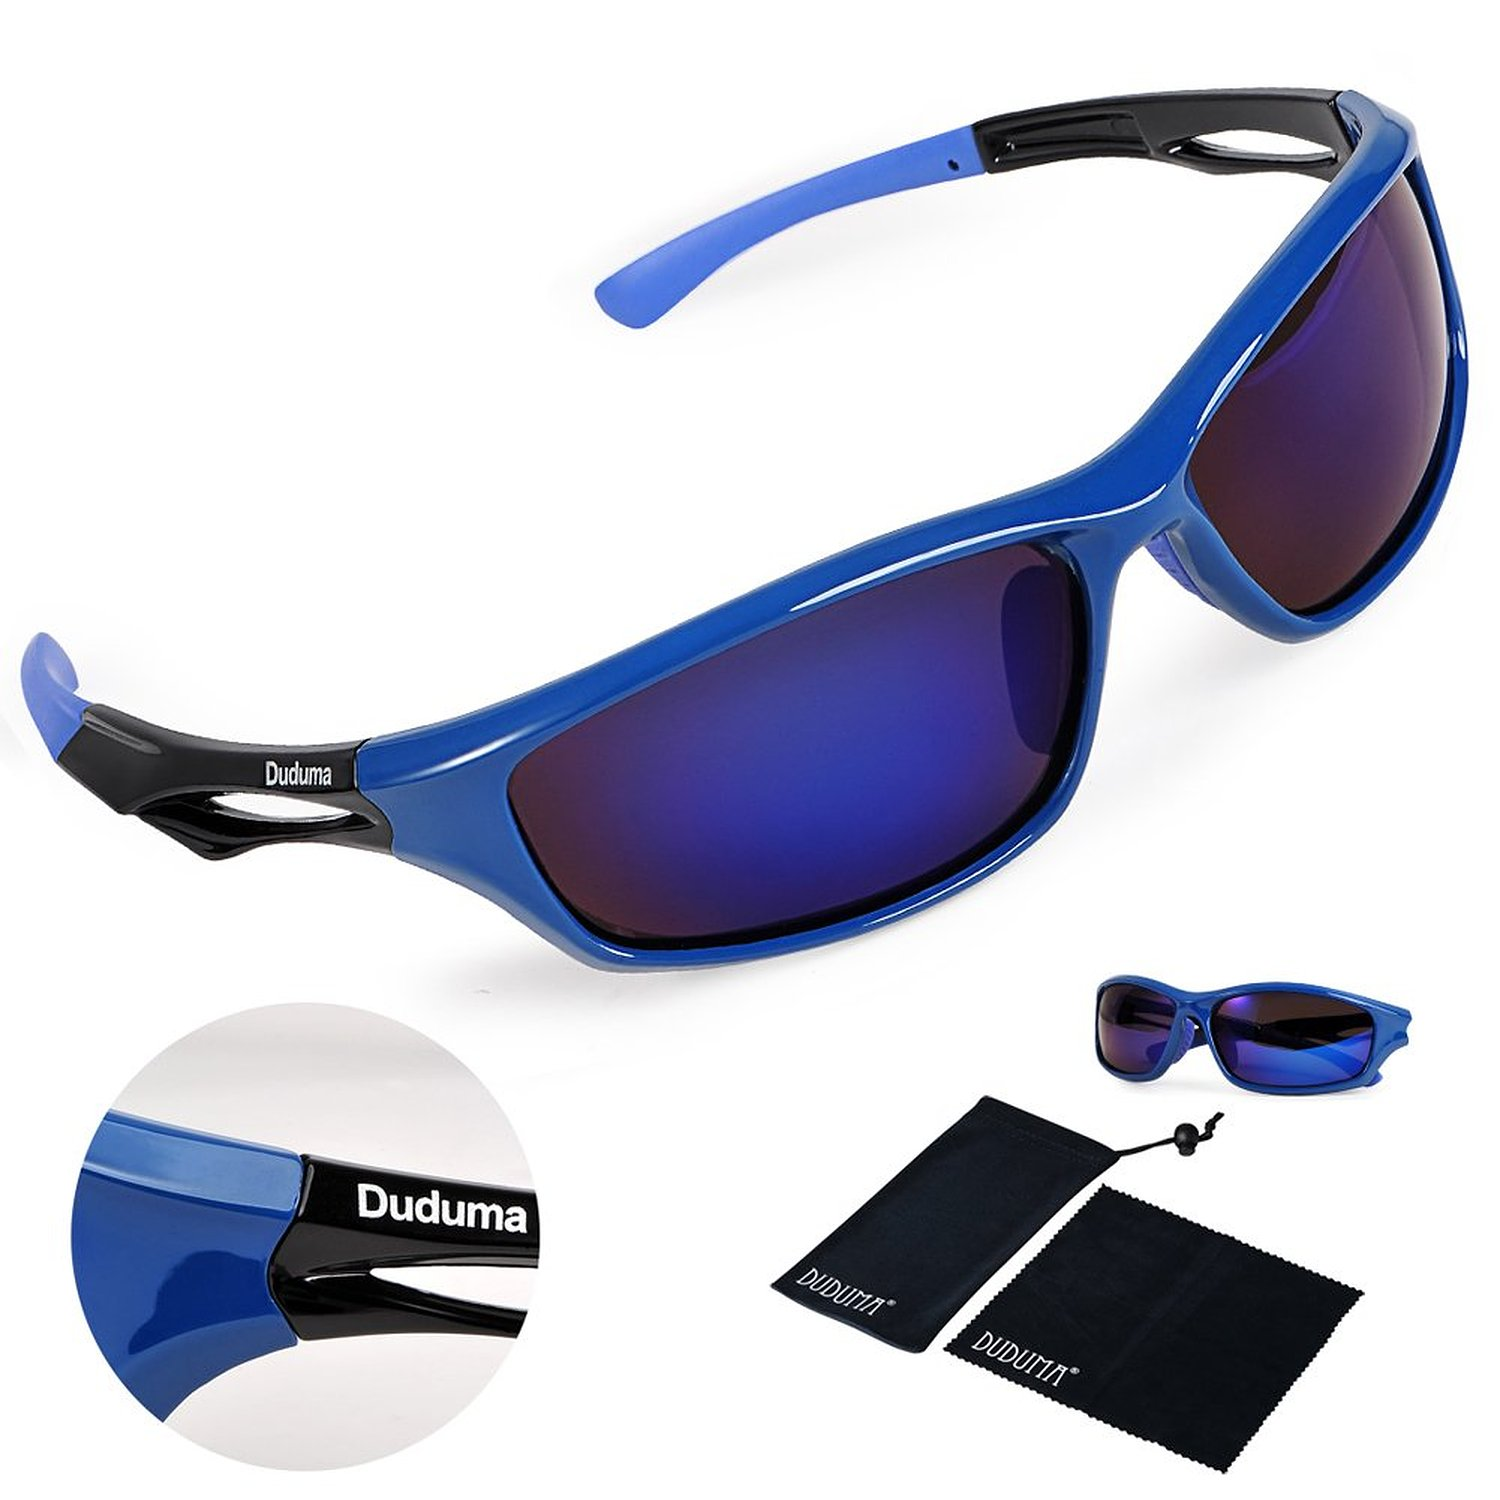 Duduma Polarized Sports Sunglasses for Running